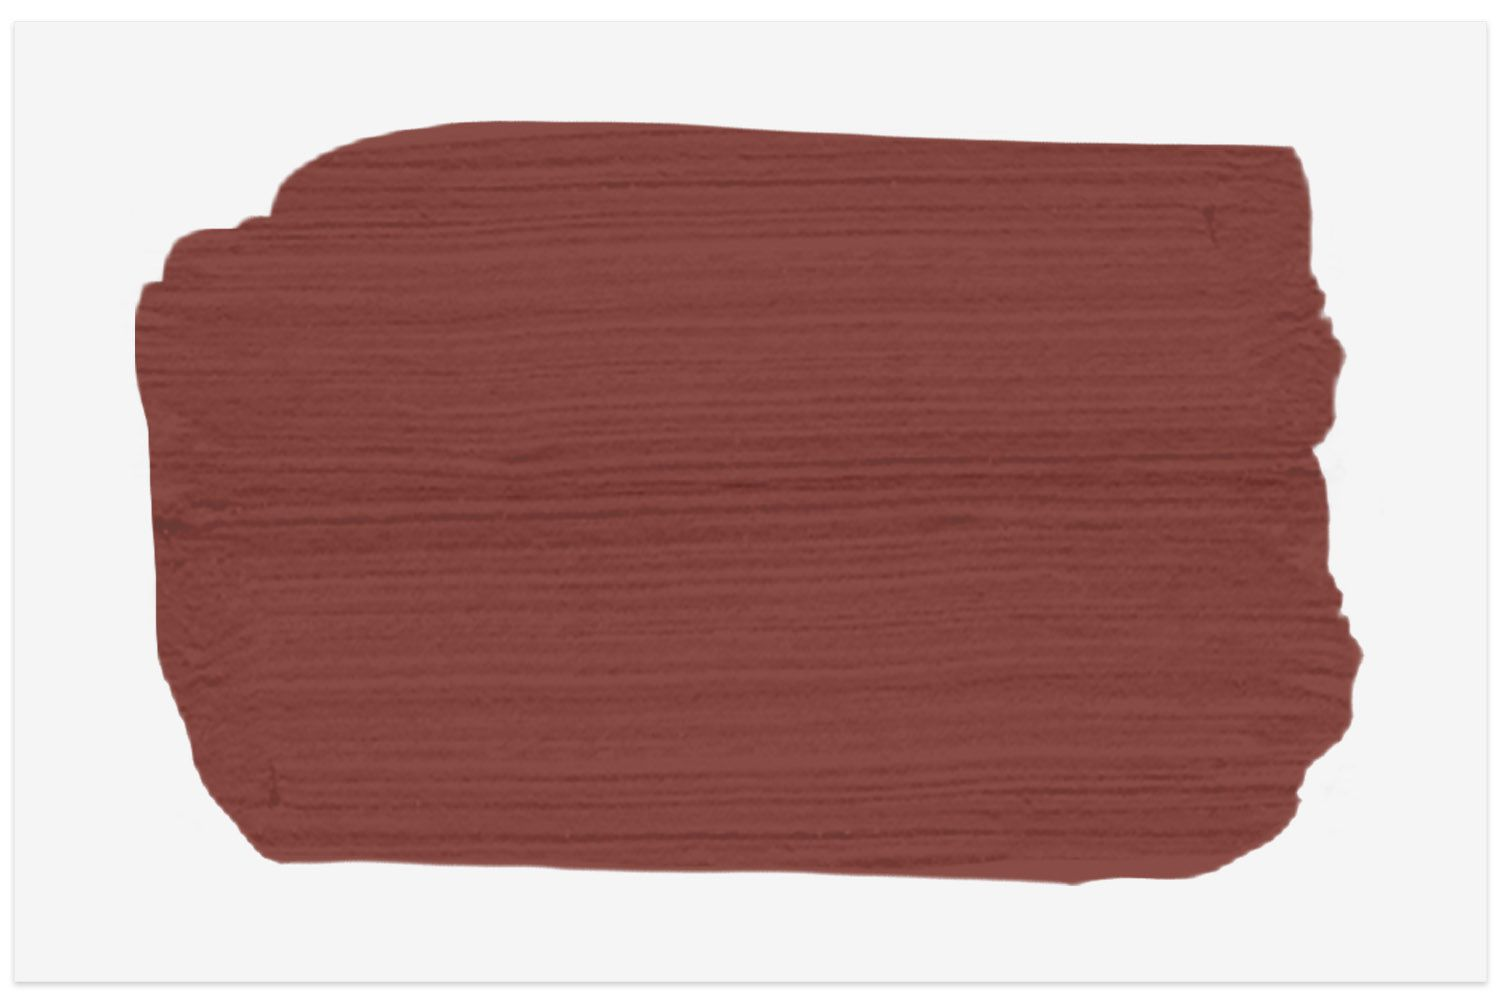 Devine Paints Paprika paint swatch for a perfect Tuscan red